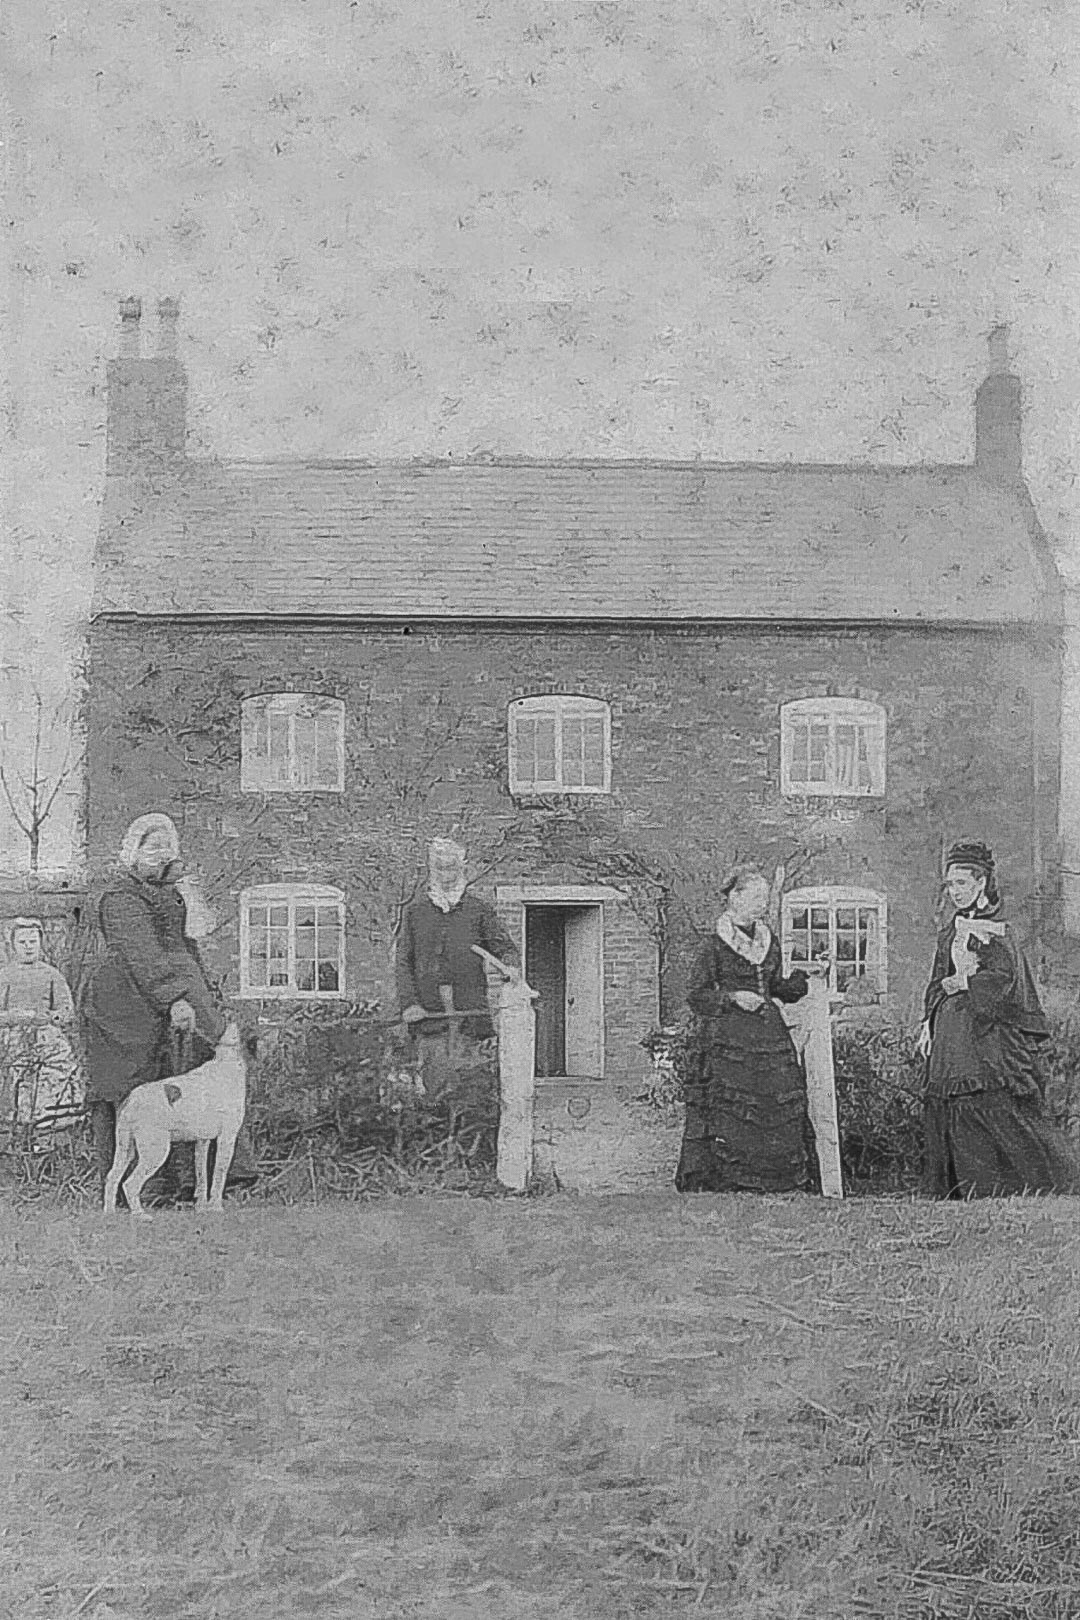 James Draper (1802 - 1880) and Mary Draper (nee Price) (1804 - 1890), the parents of Charles Draper c 1875.  After Charles purchased a home for his siblings he enabled his sisters Emma and Louisa (also pictured) to live in it, and then willed it to his daughter Fanny upon the death of his sisters